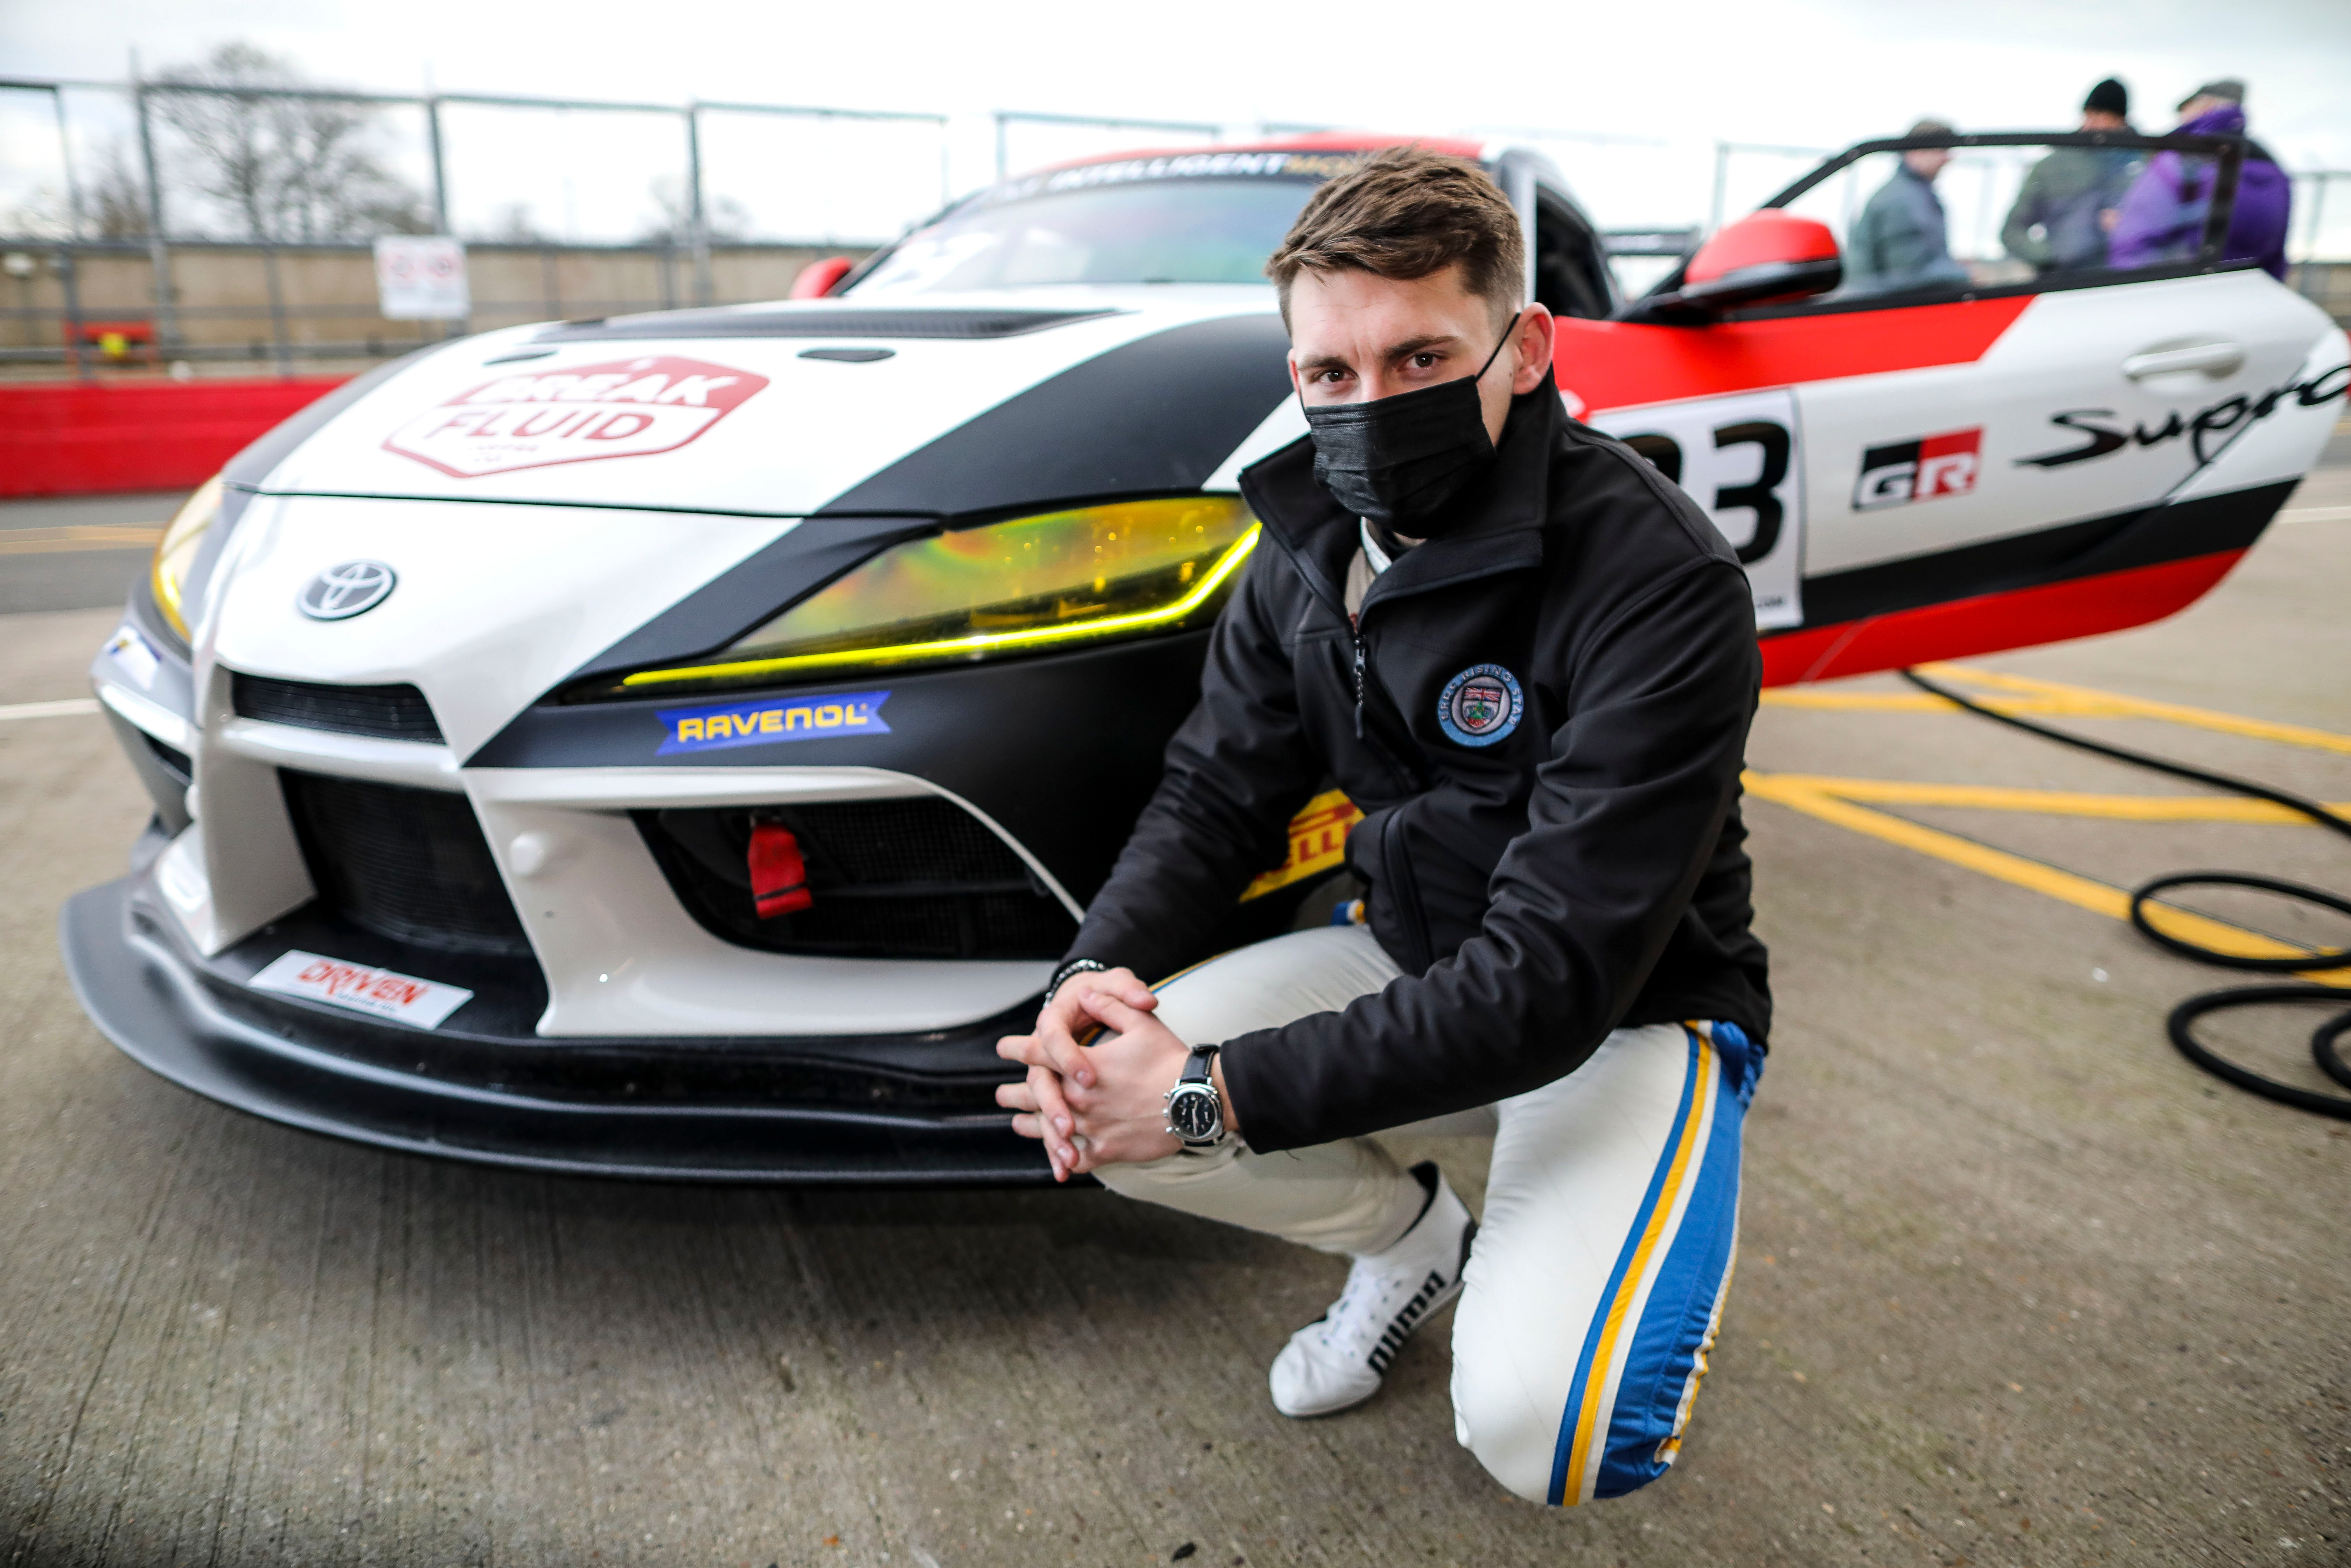 Scott McKenna is the first member of the Toyota Gazoo Racing UK Young Driver Programme